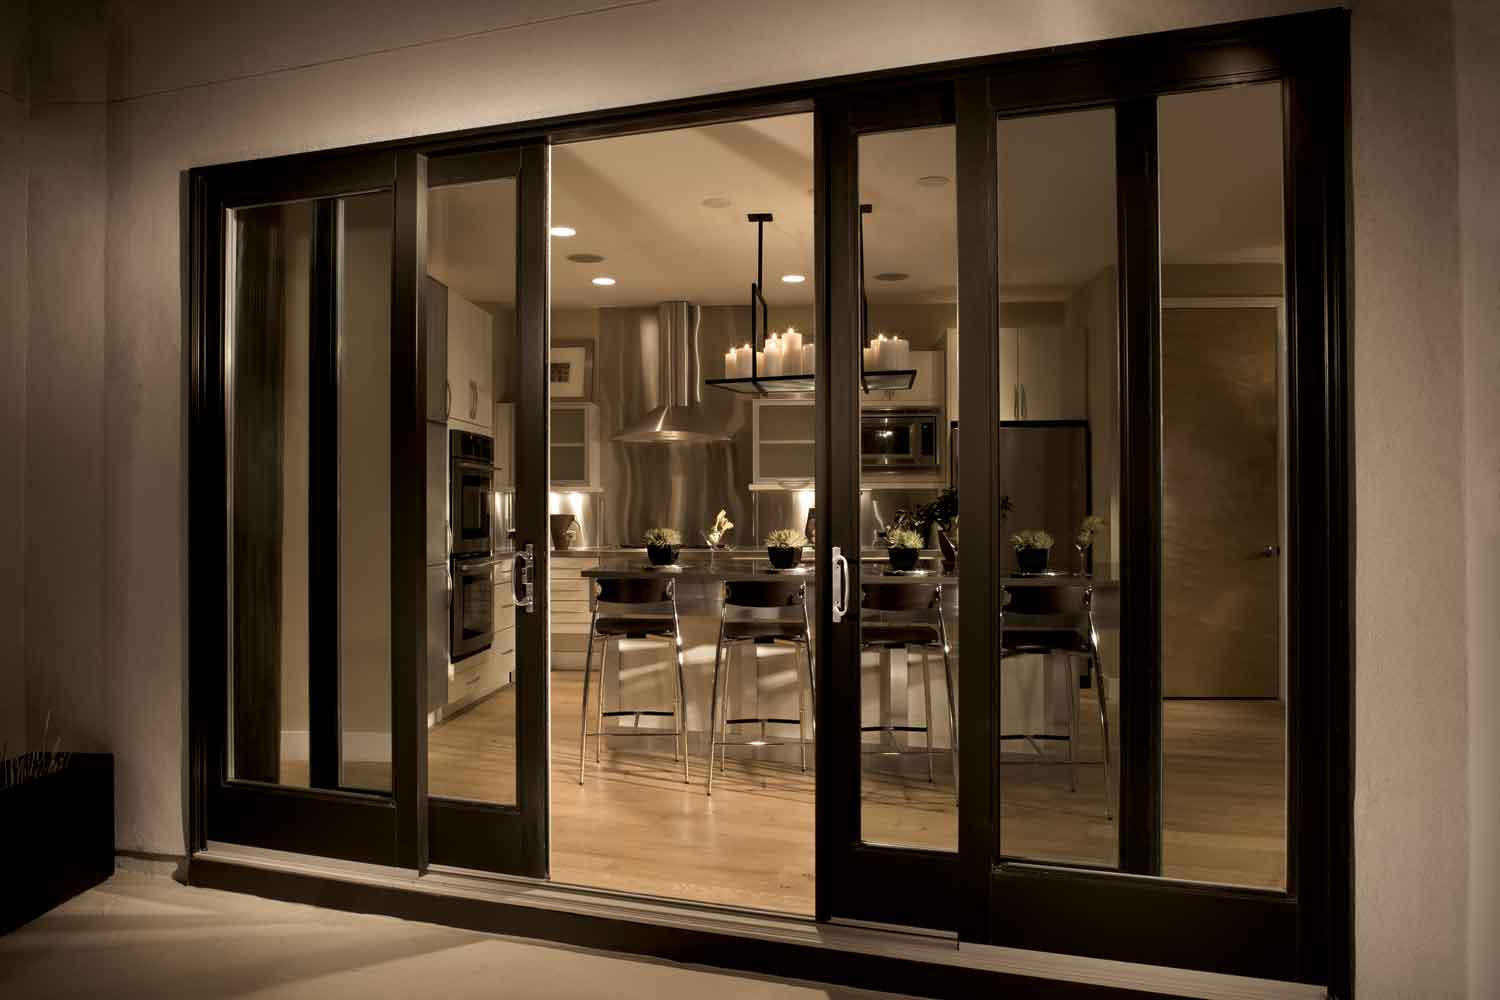 Patio sliding door 1 complete sliding doors windows for Patio window replacement